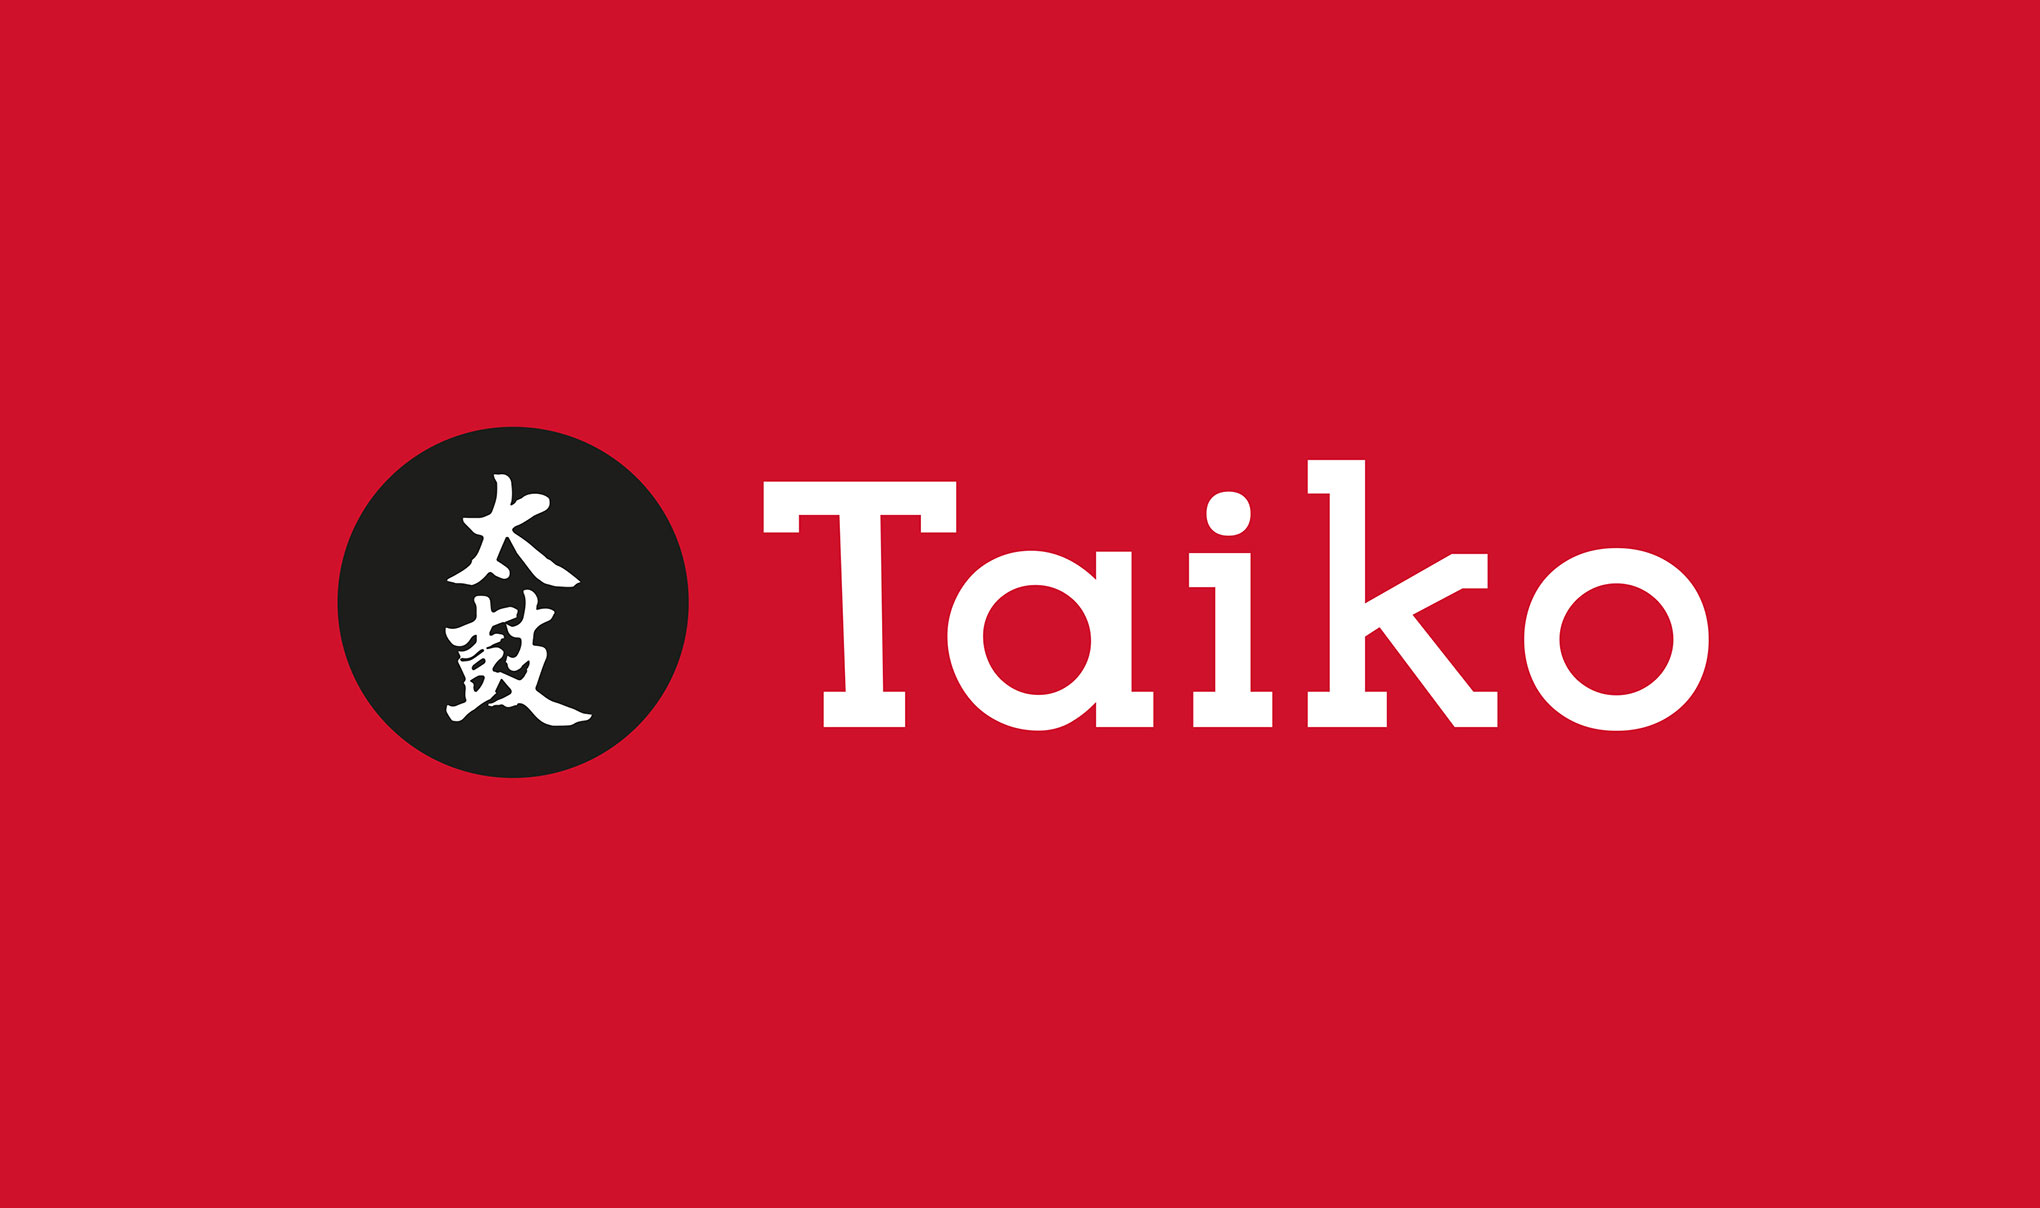 Taiko sushi brand logo - small version on red background